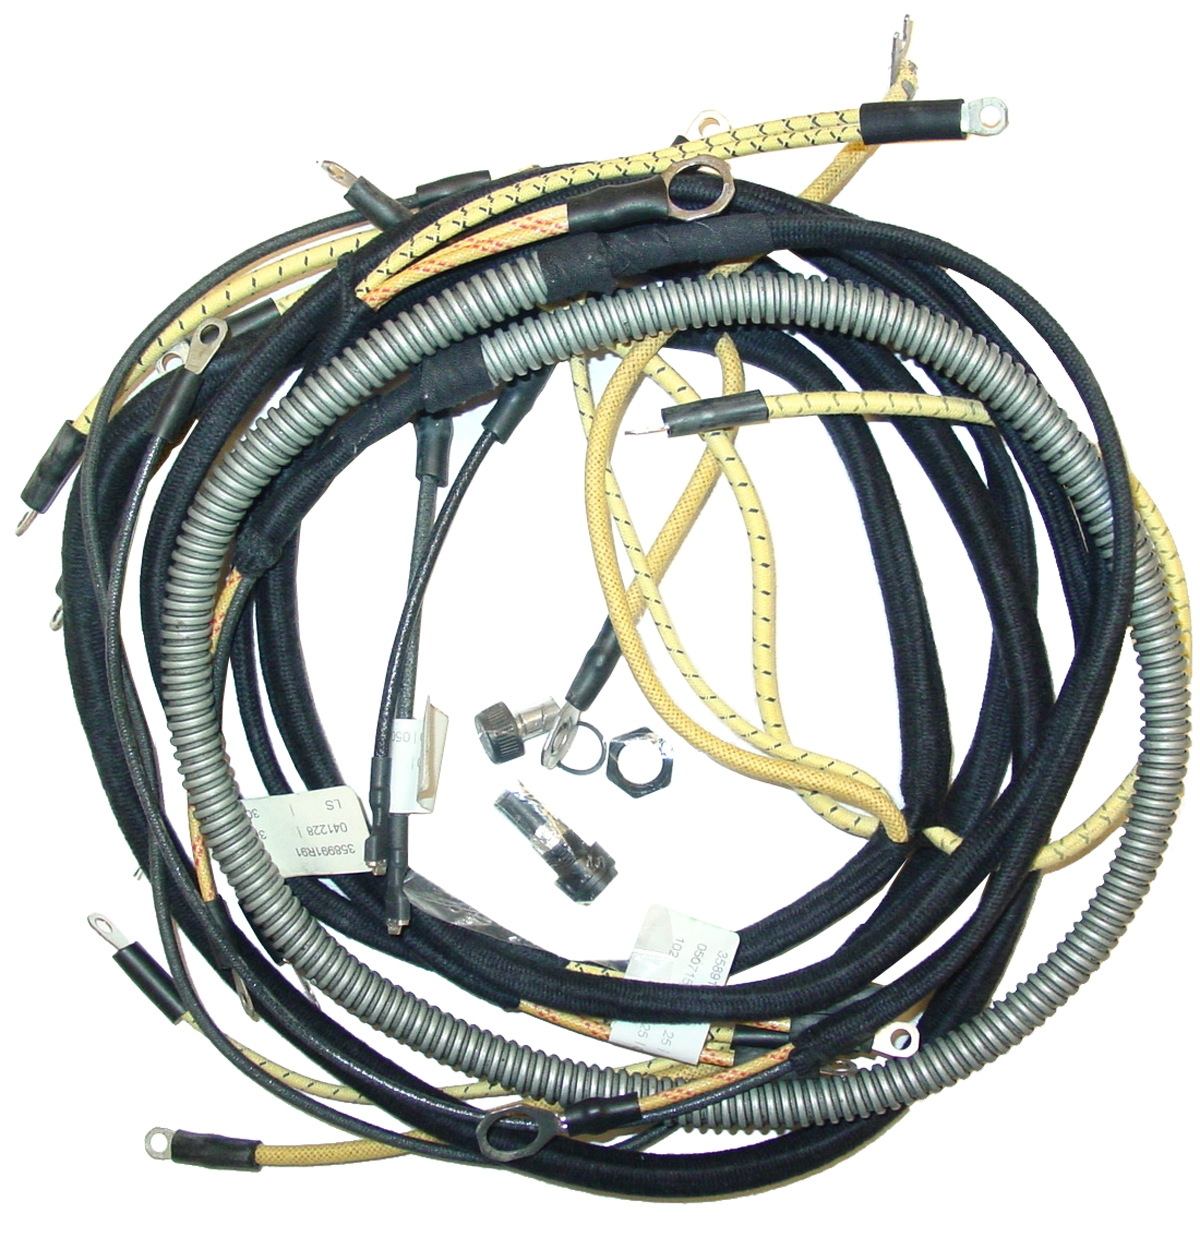 IHS488 wiring harness case ih parts case ih tractor parts Chevy Engine Wiring Harness at mifinder.co